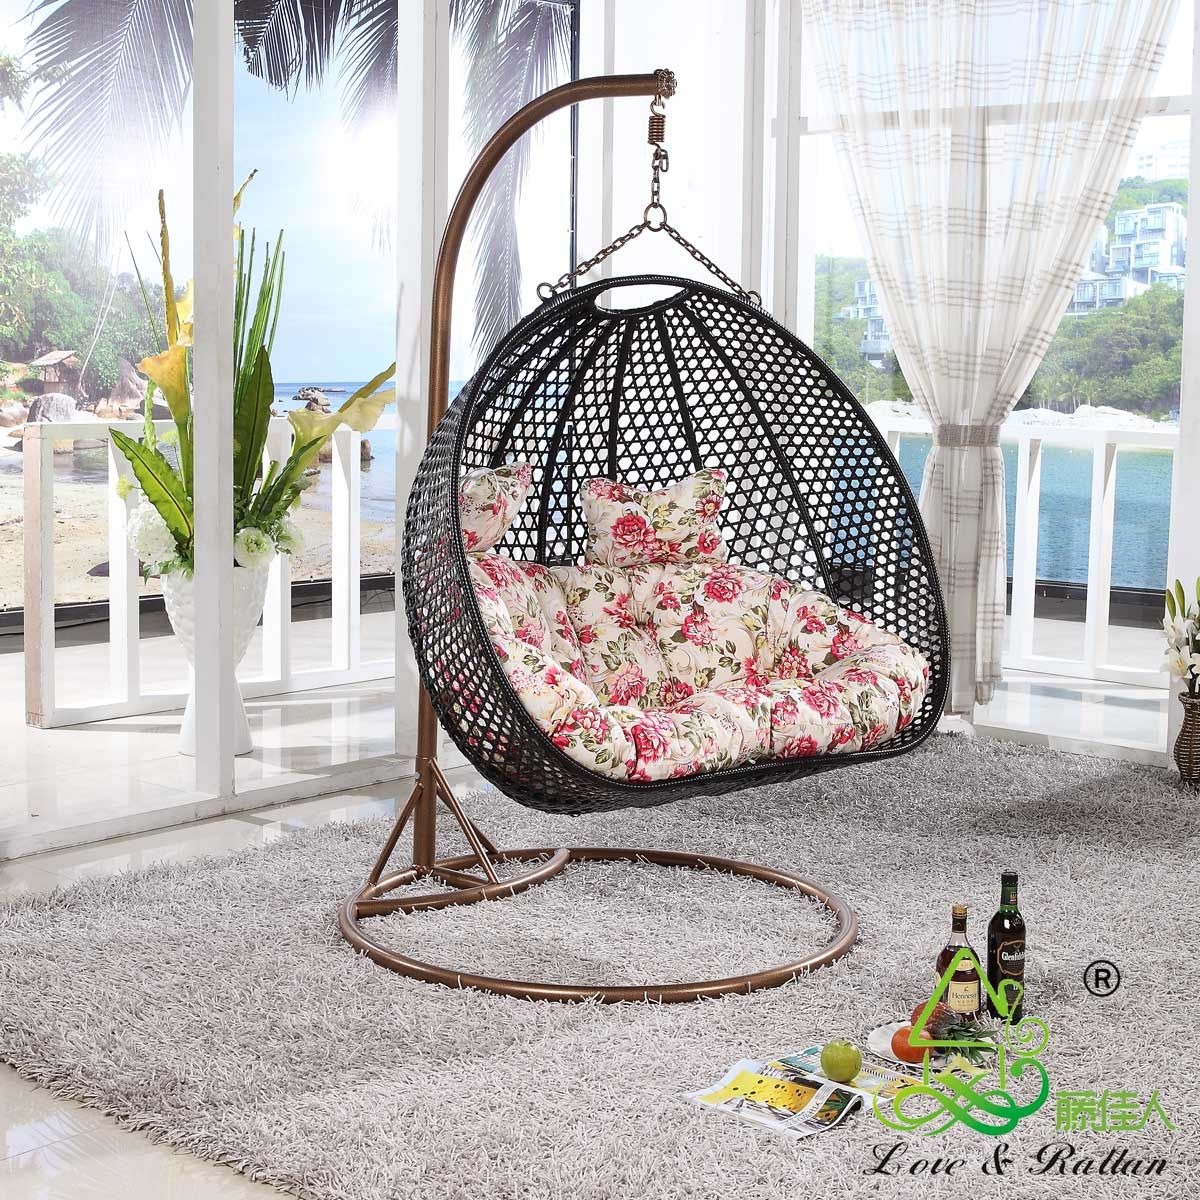 Bedroom Furniture Chairs Bedroom Hanging Cabinet Design Bedroom View From Bed D I Y Bedroom Decor: Furniture, Rattan Chair Outdoor Swing Hanging Basket